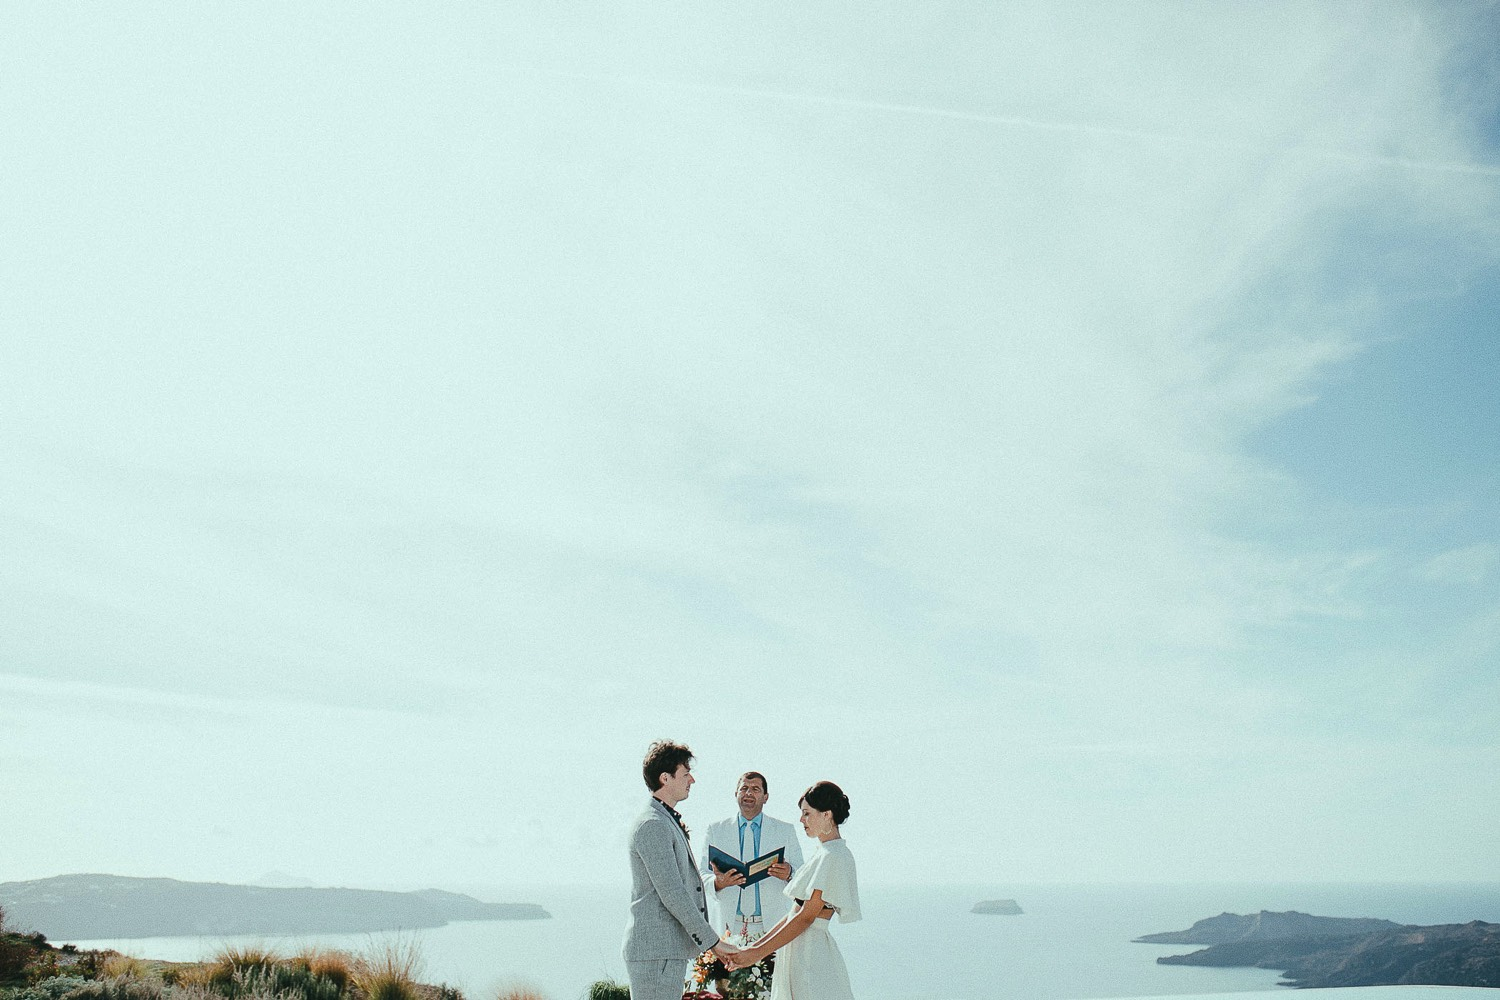 santorini-wedding-photographer17.jpg